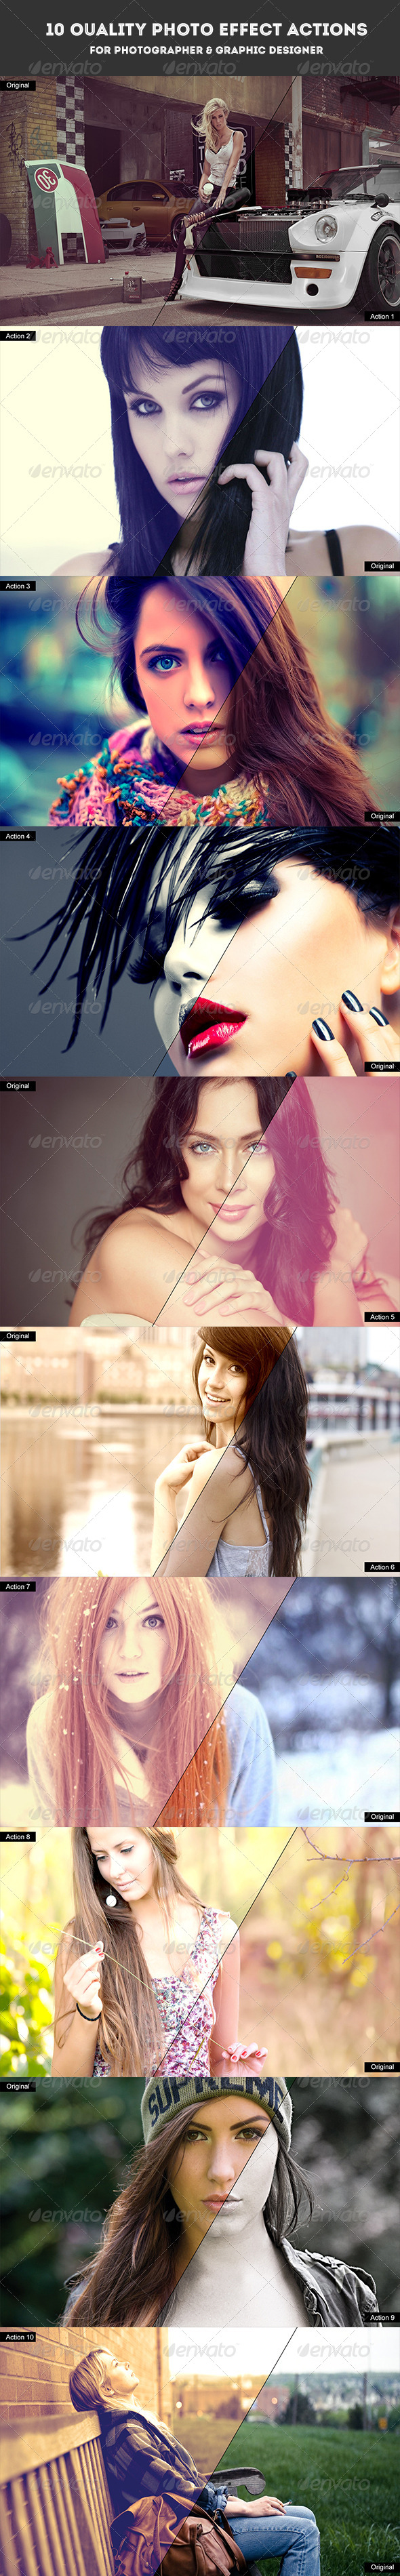 GraphicRiver 10 Quality Photo Effect Actions Photoshop 7226406